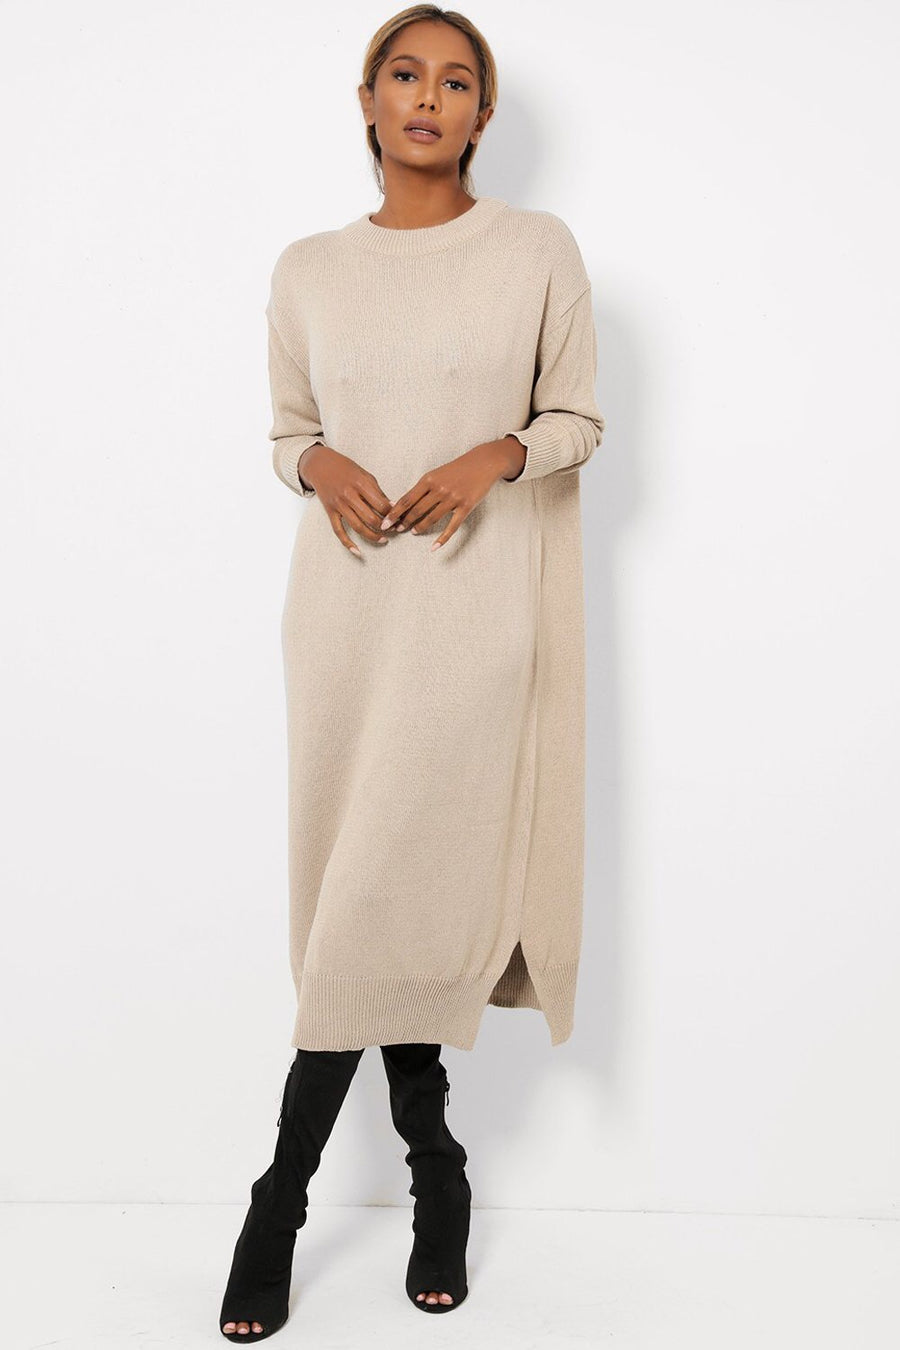 ' Stella ' oatmeal knitted long jumper dress - Bikini Genie